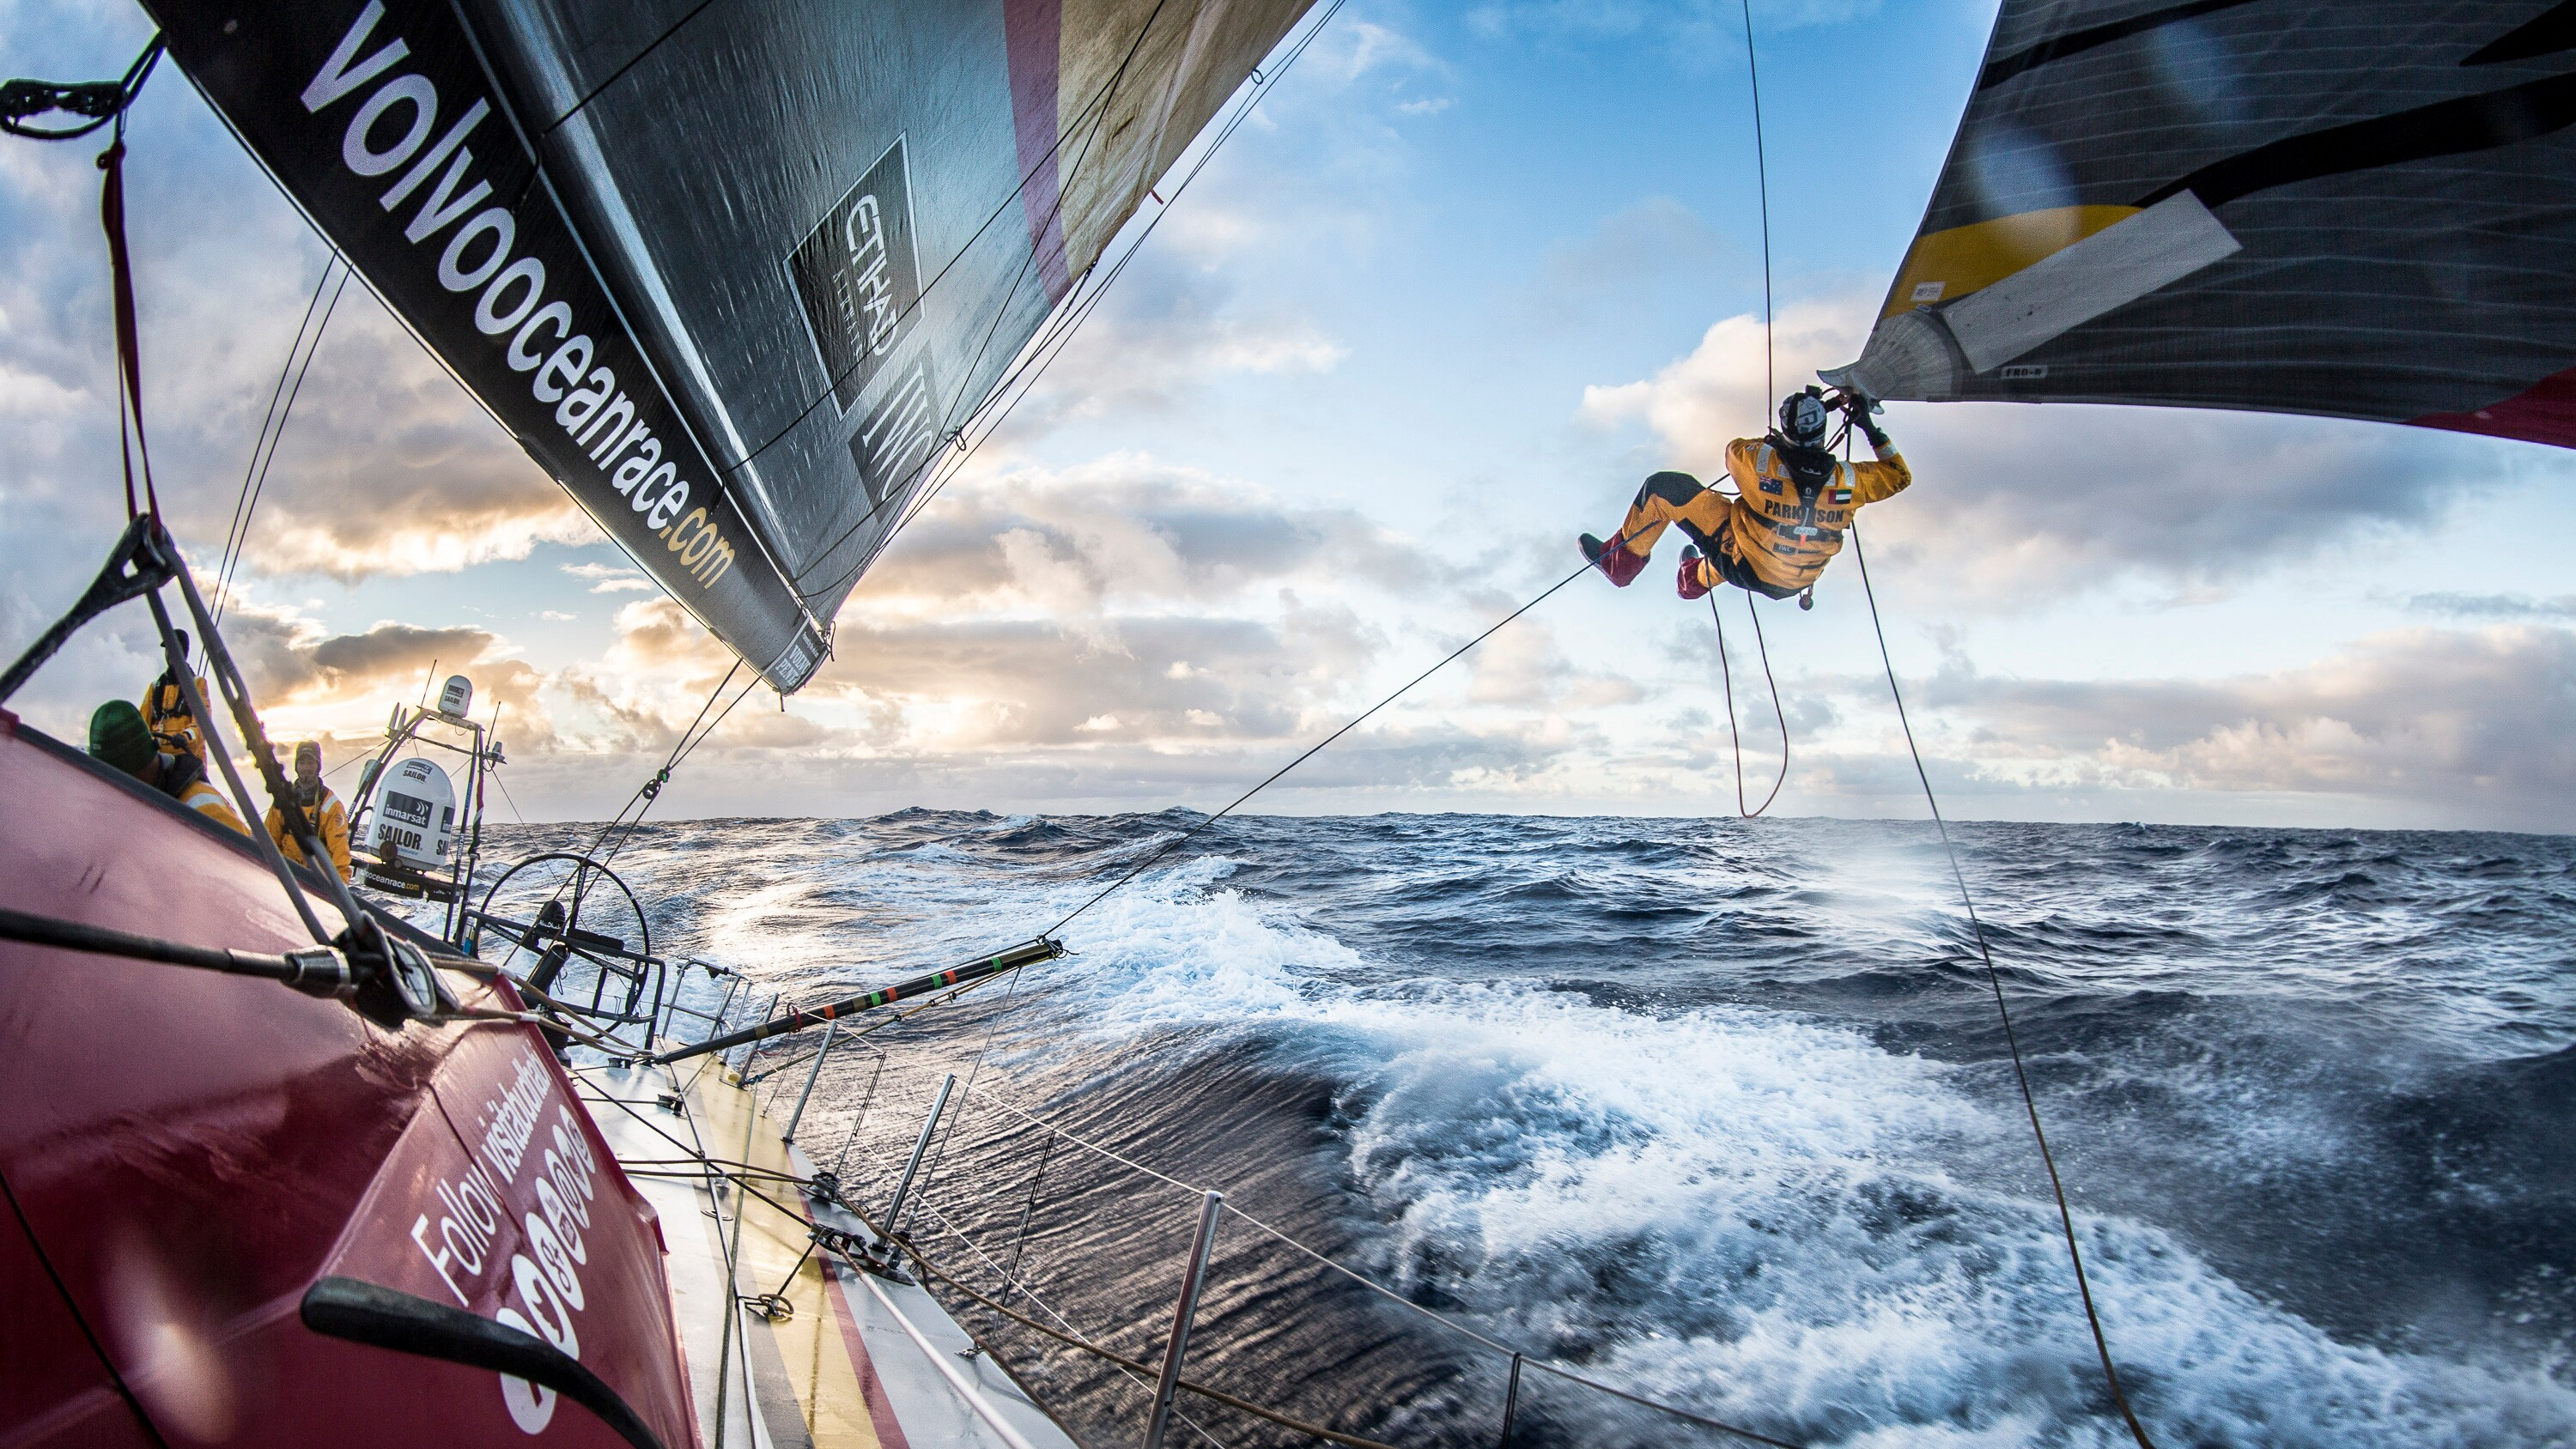 A Volvo Ocean Race crew member tackles a tricky rope climb out on the ocean